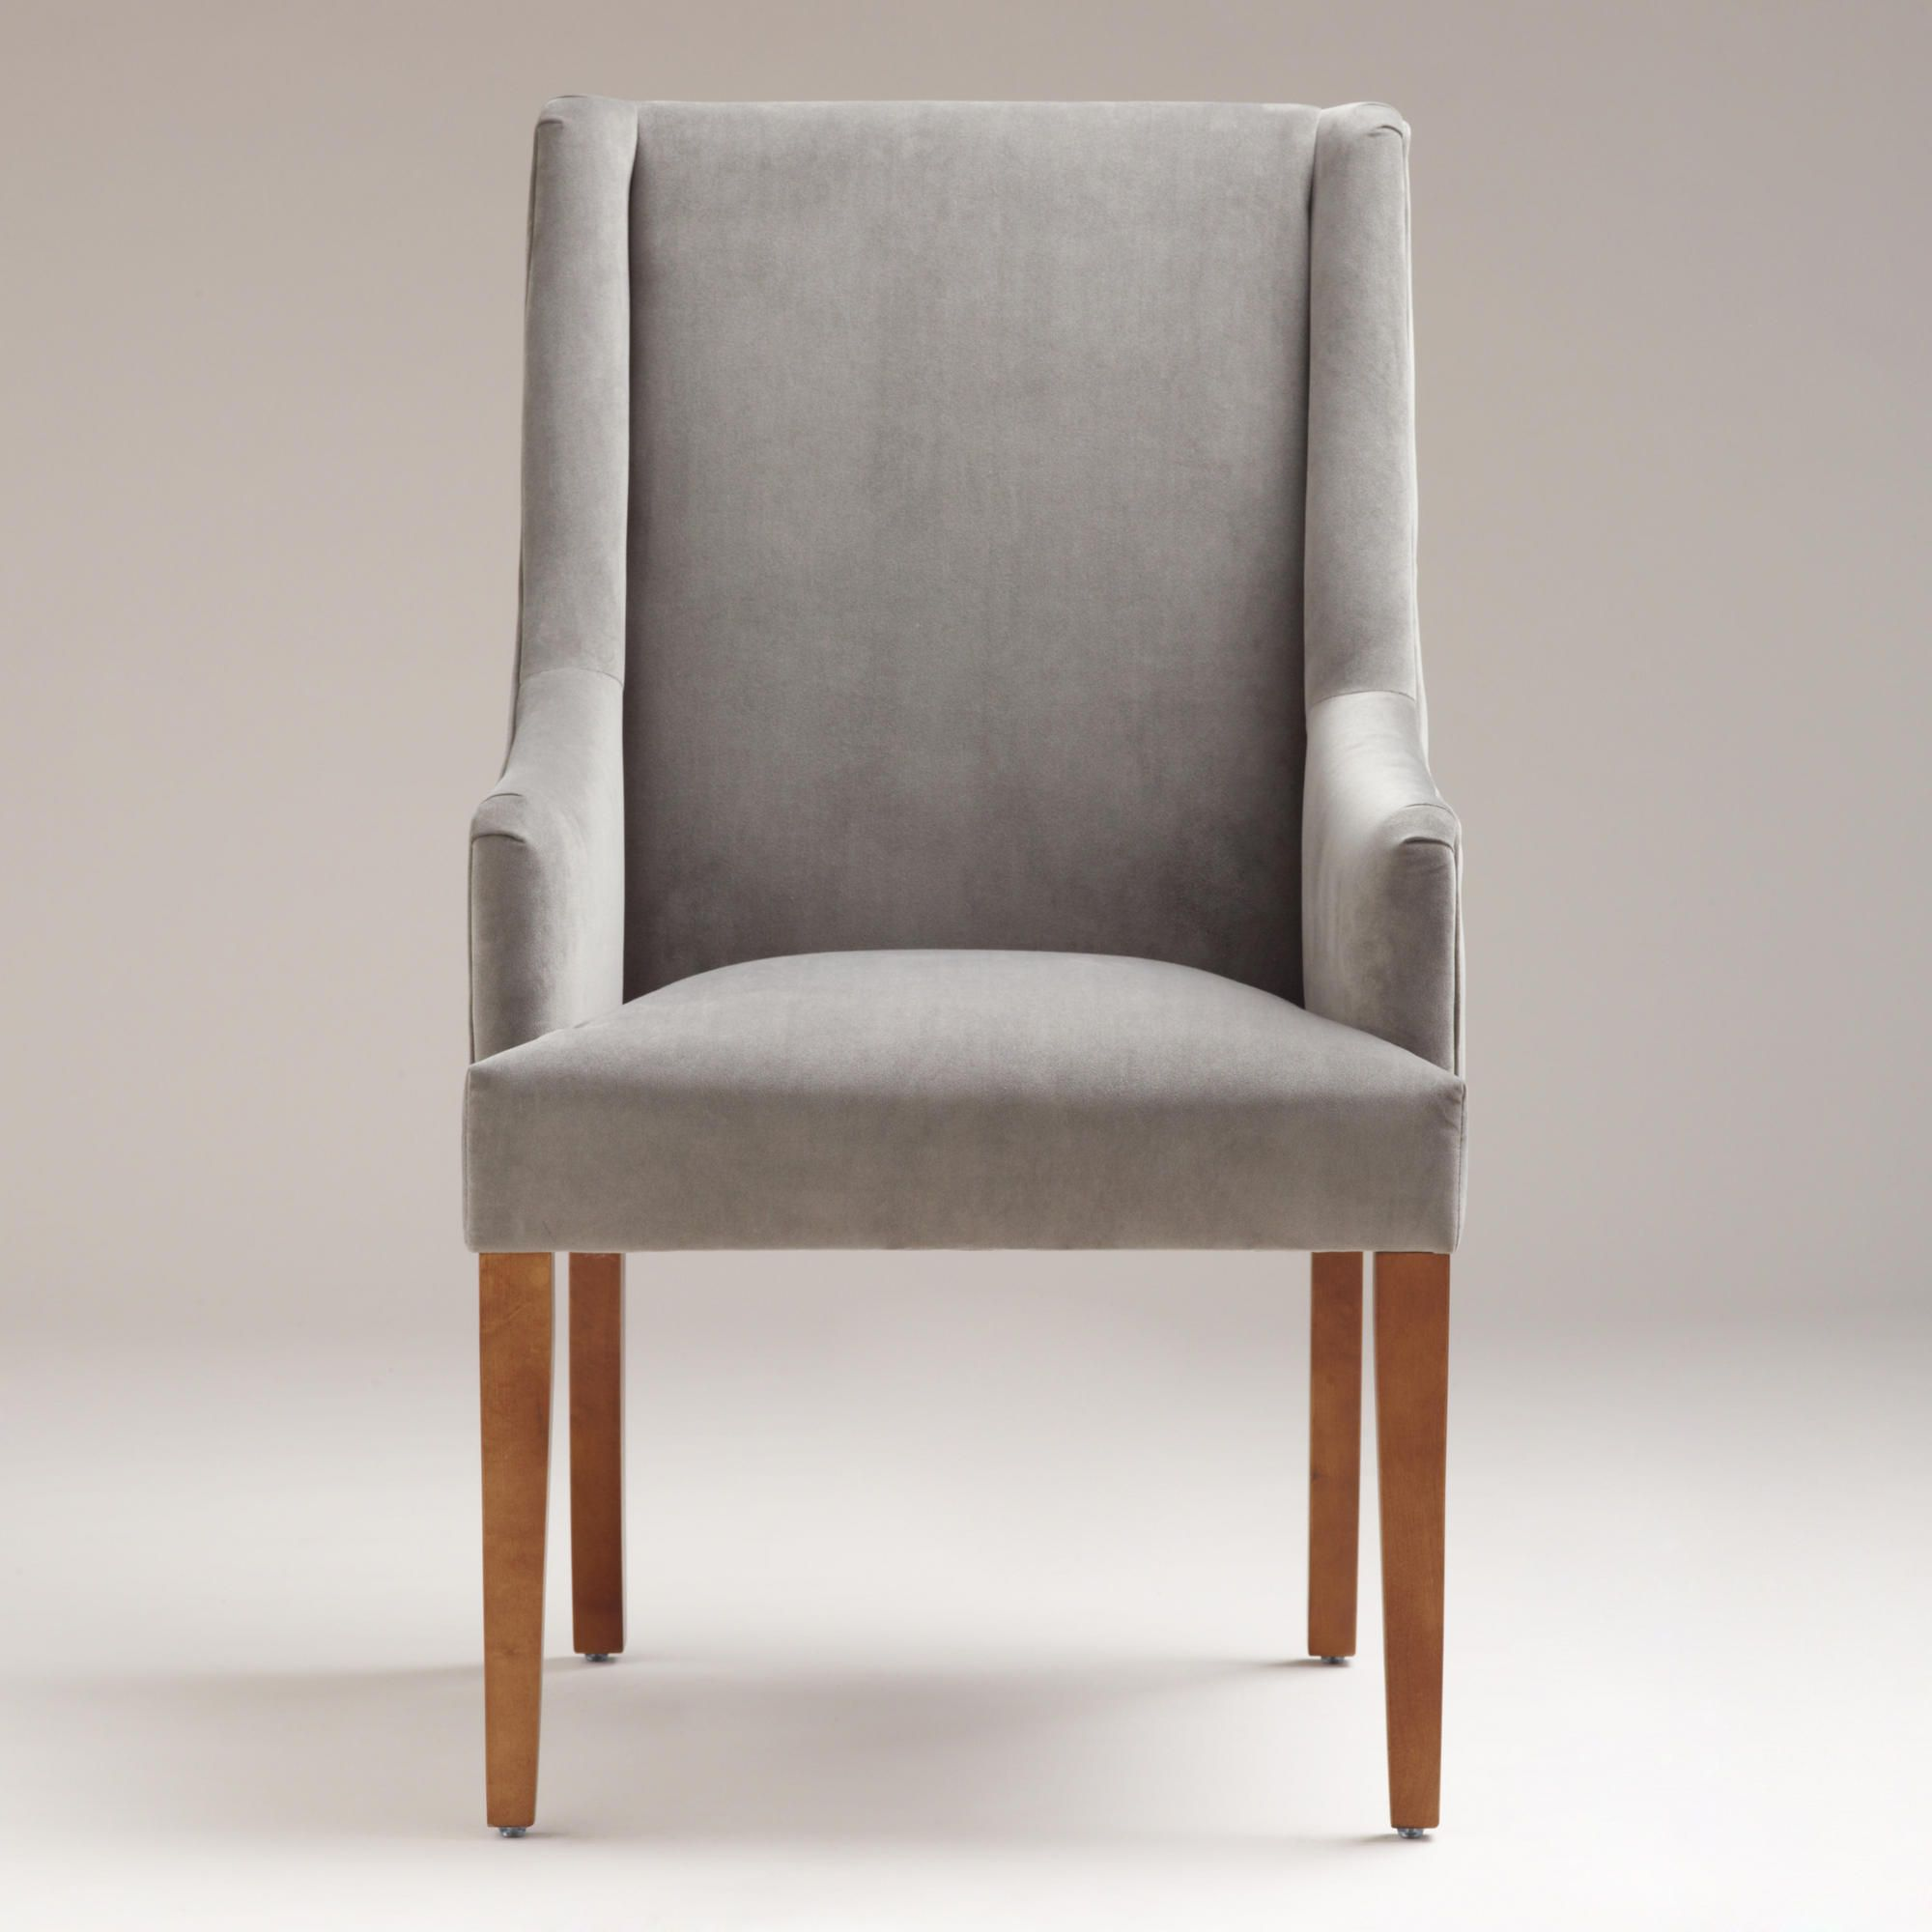 Comfy U0026 Stylish So Company Can Stay A While... Concrete Hayden Dining Chair